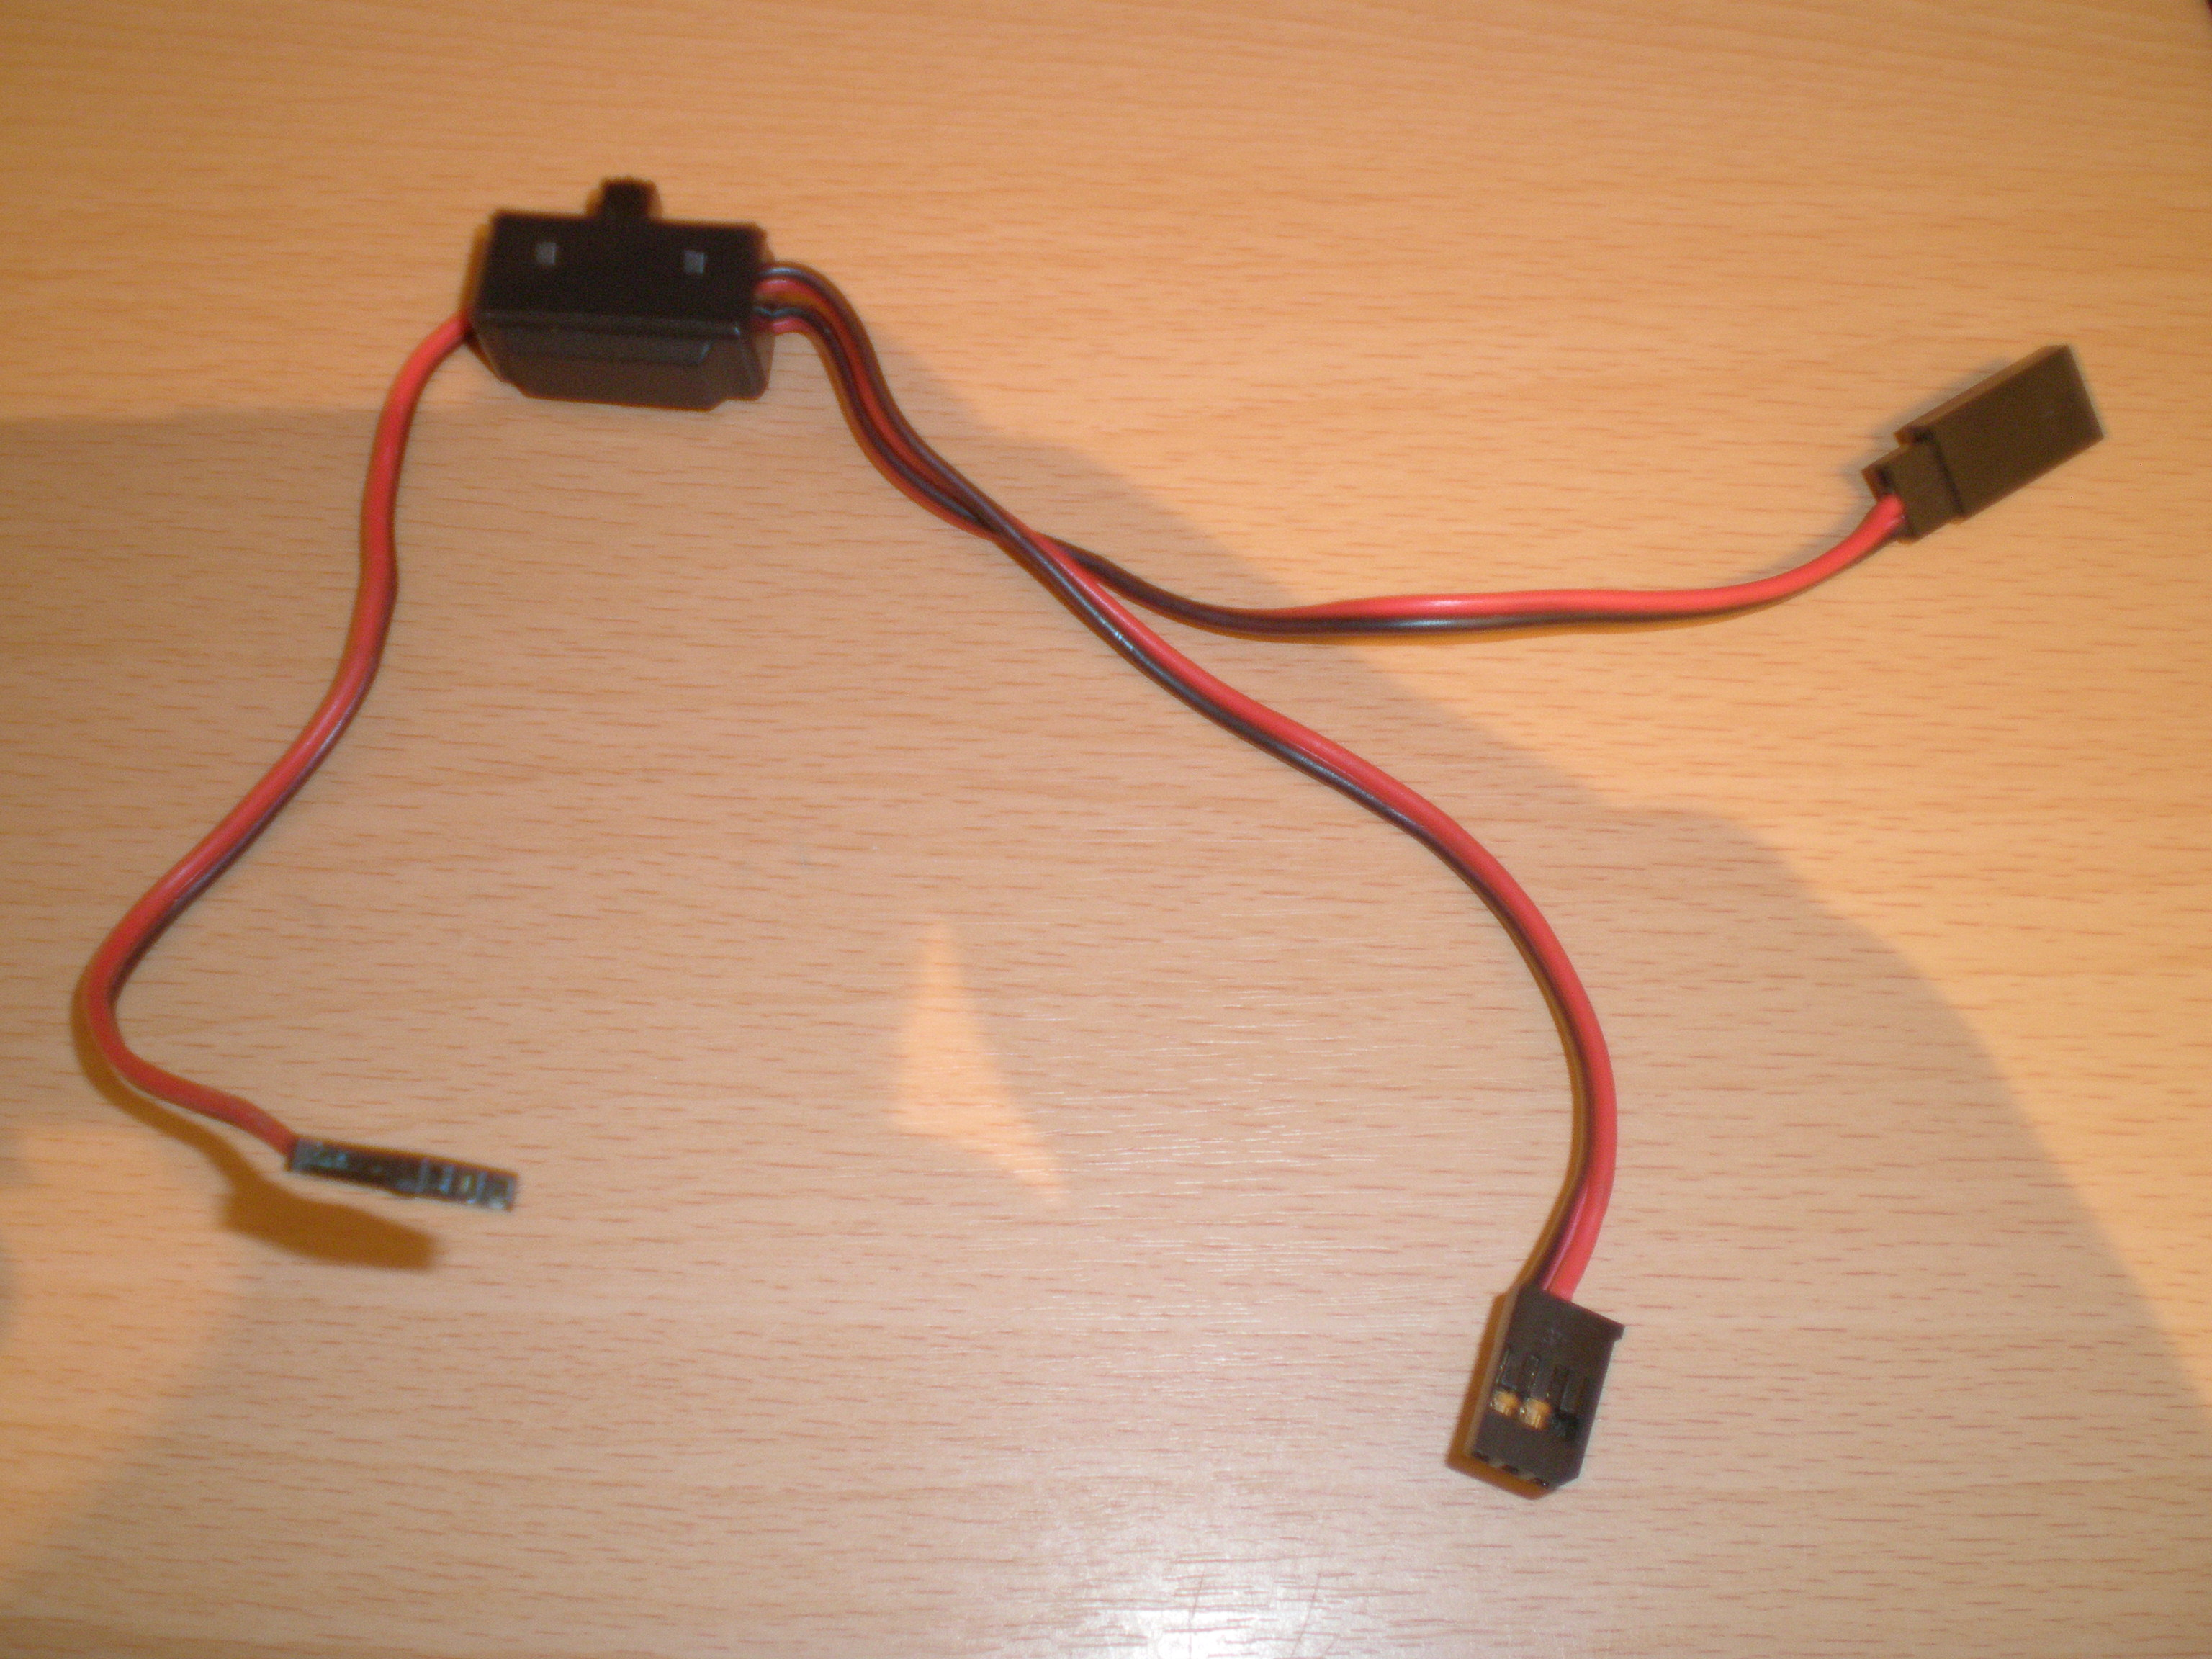 Baja Kill Switch Rcu Forums Help Wanted And Ignition Wiring Click Image For Larger Version Name Gd93747 Views 51 Size 116